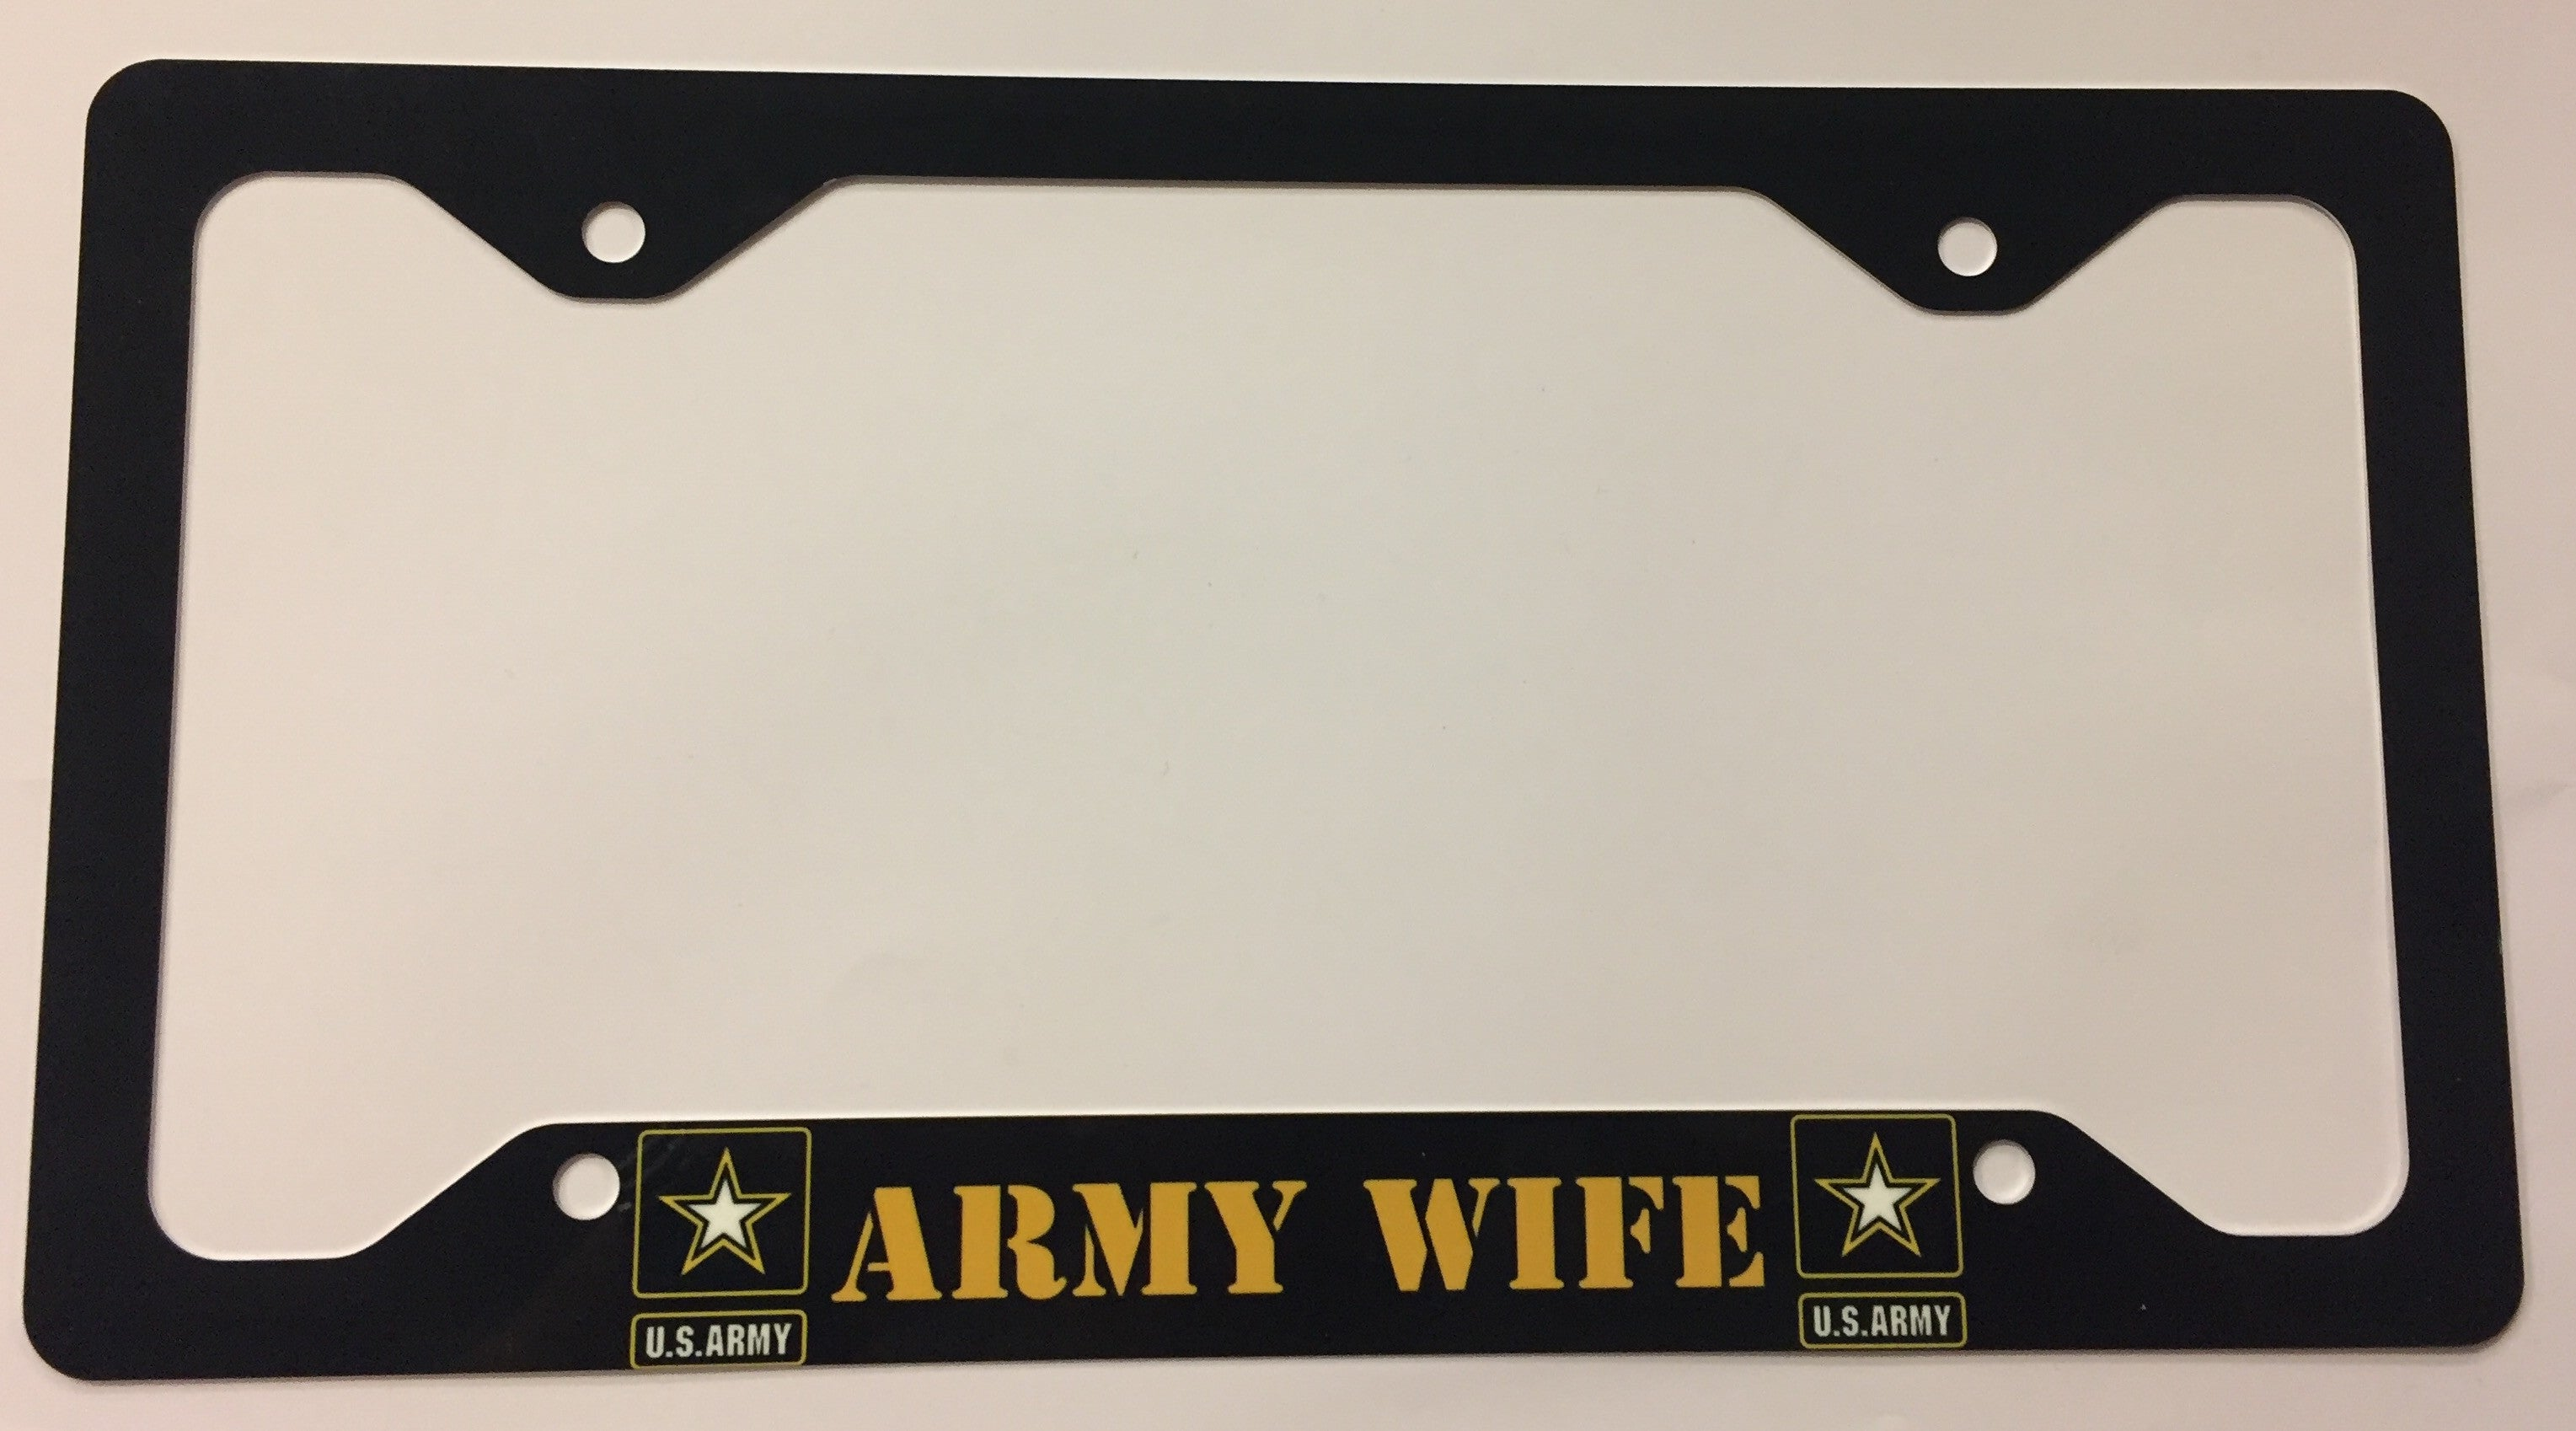 U.S. Army Wife License Plate Frame